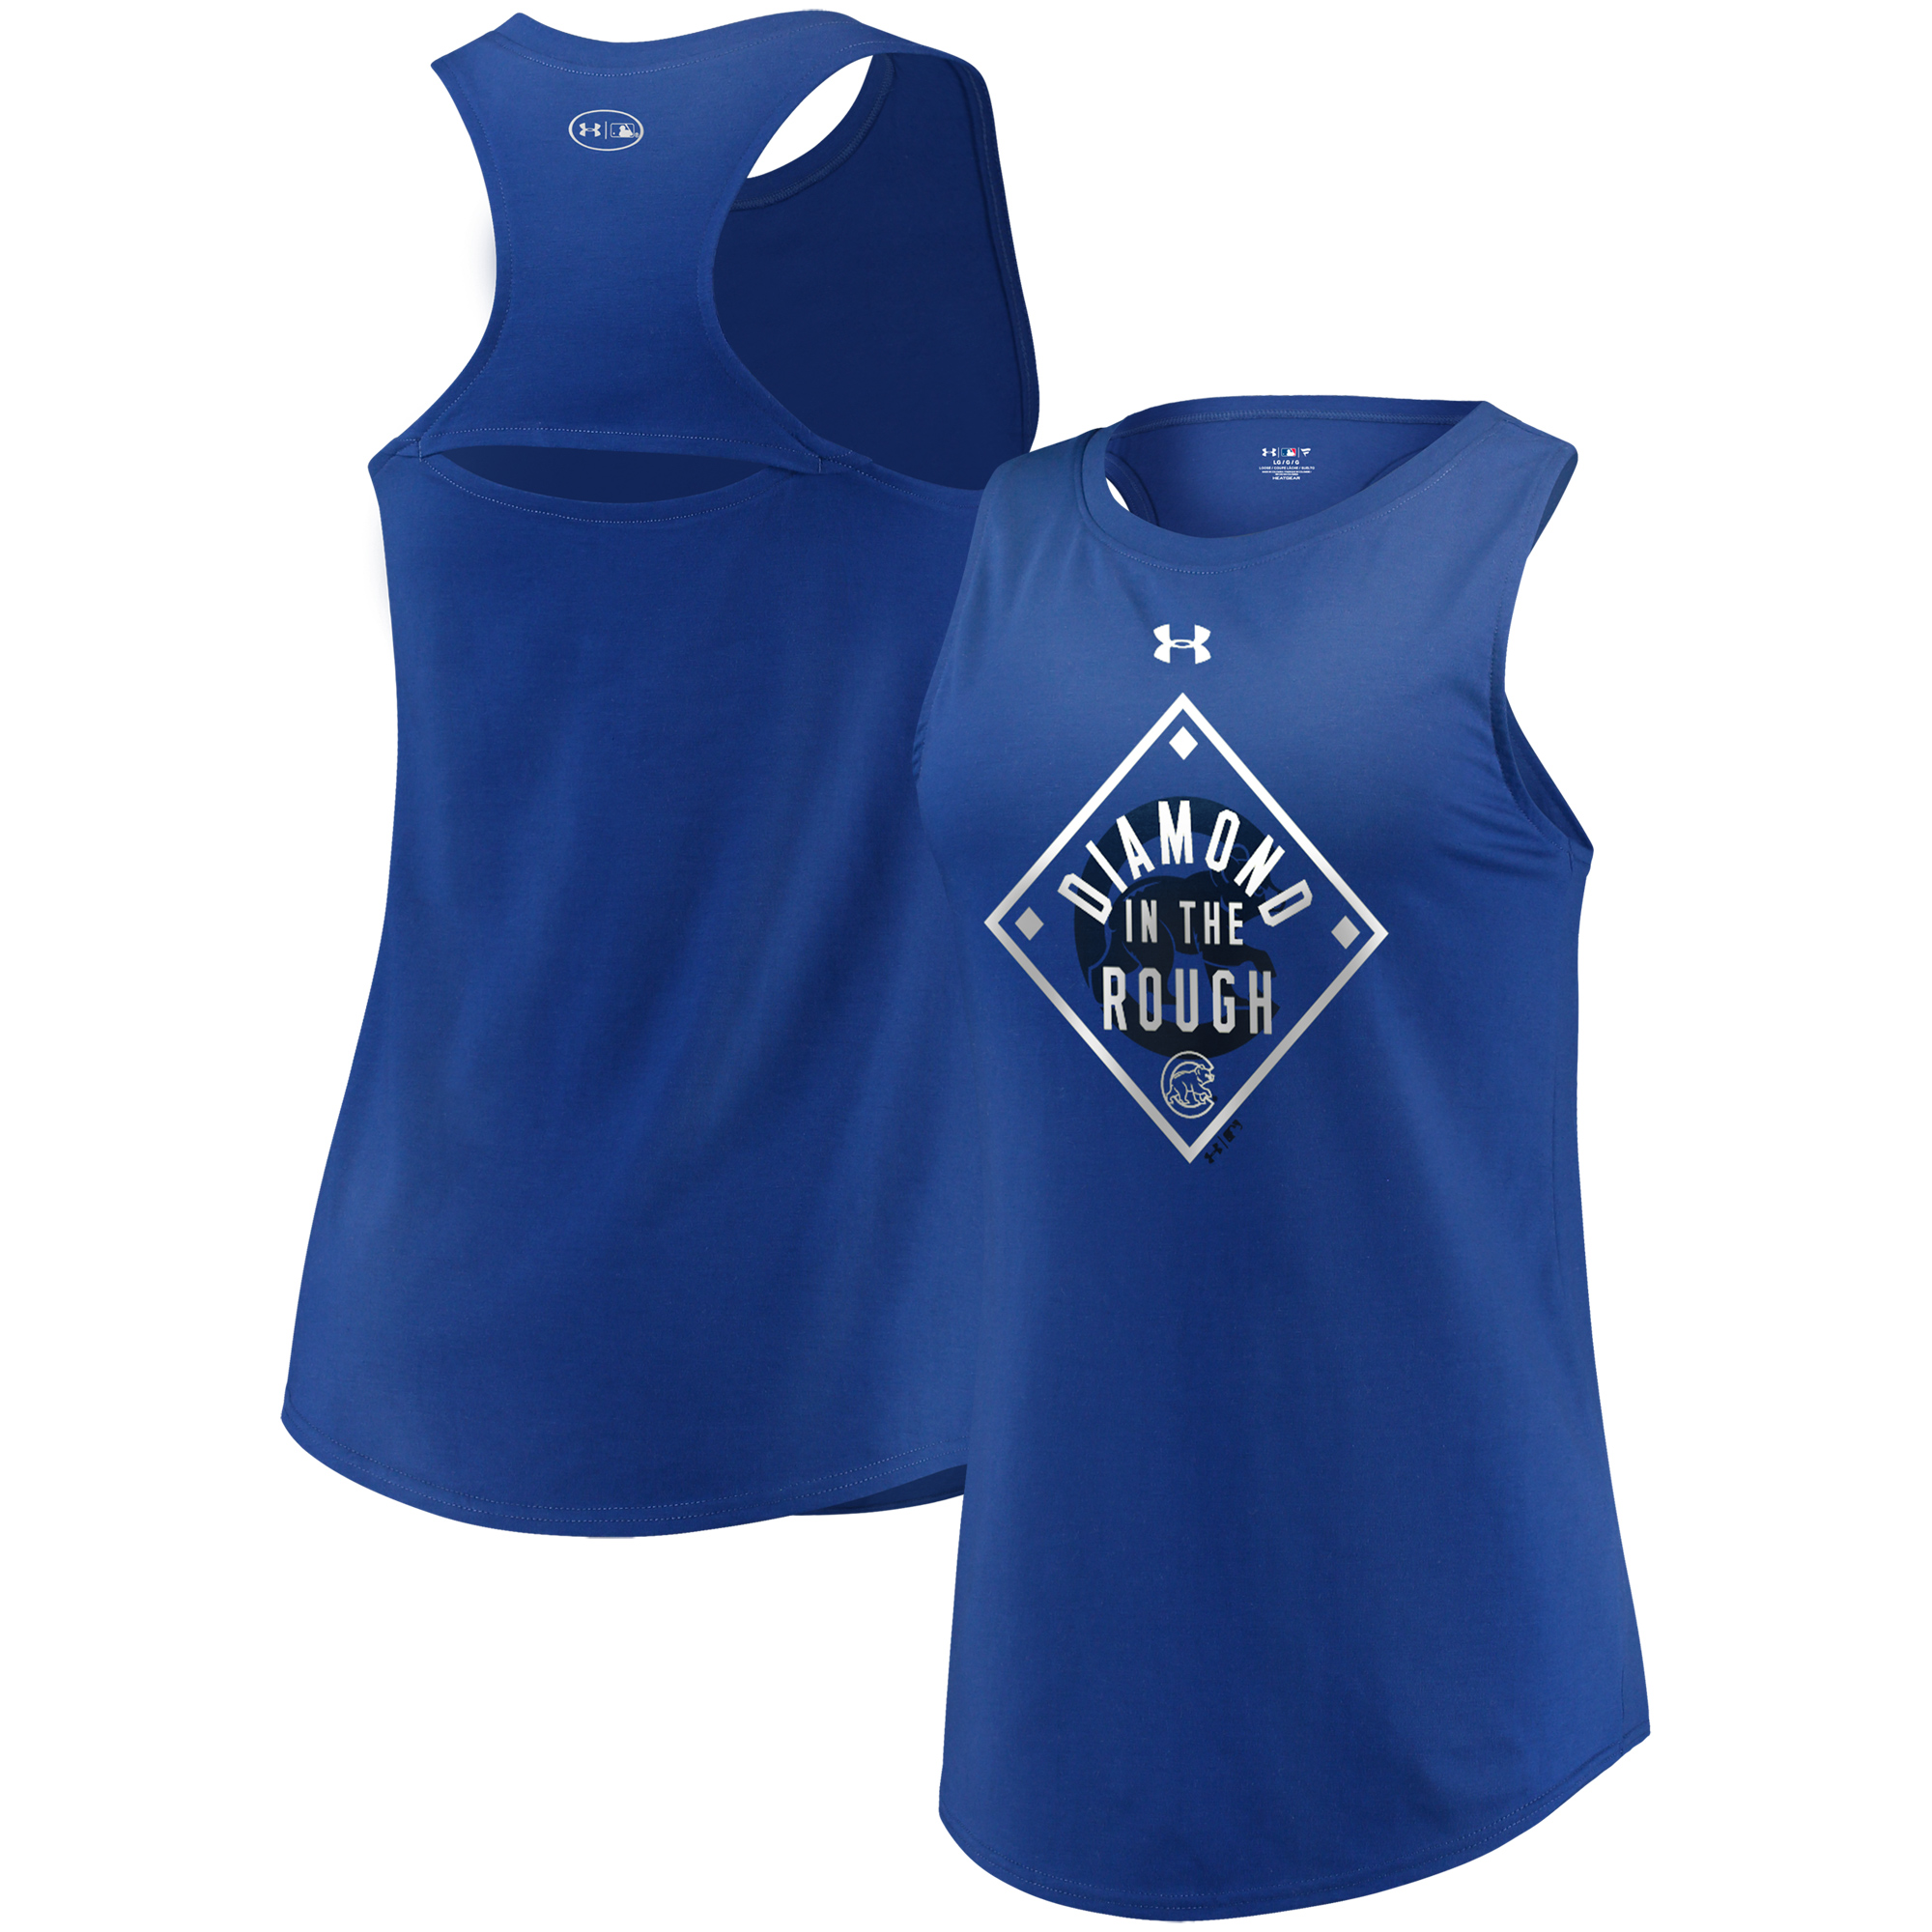 Chicago Cubs Under Armour Women's Passion Diamond Tri-Blend Performance Tank Top Royal by MAJESTIC LSG